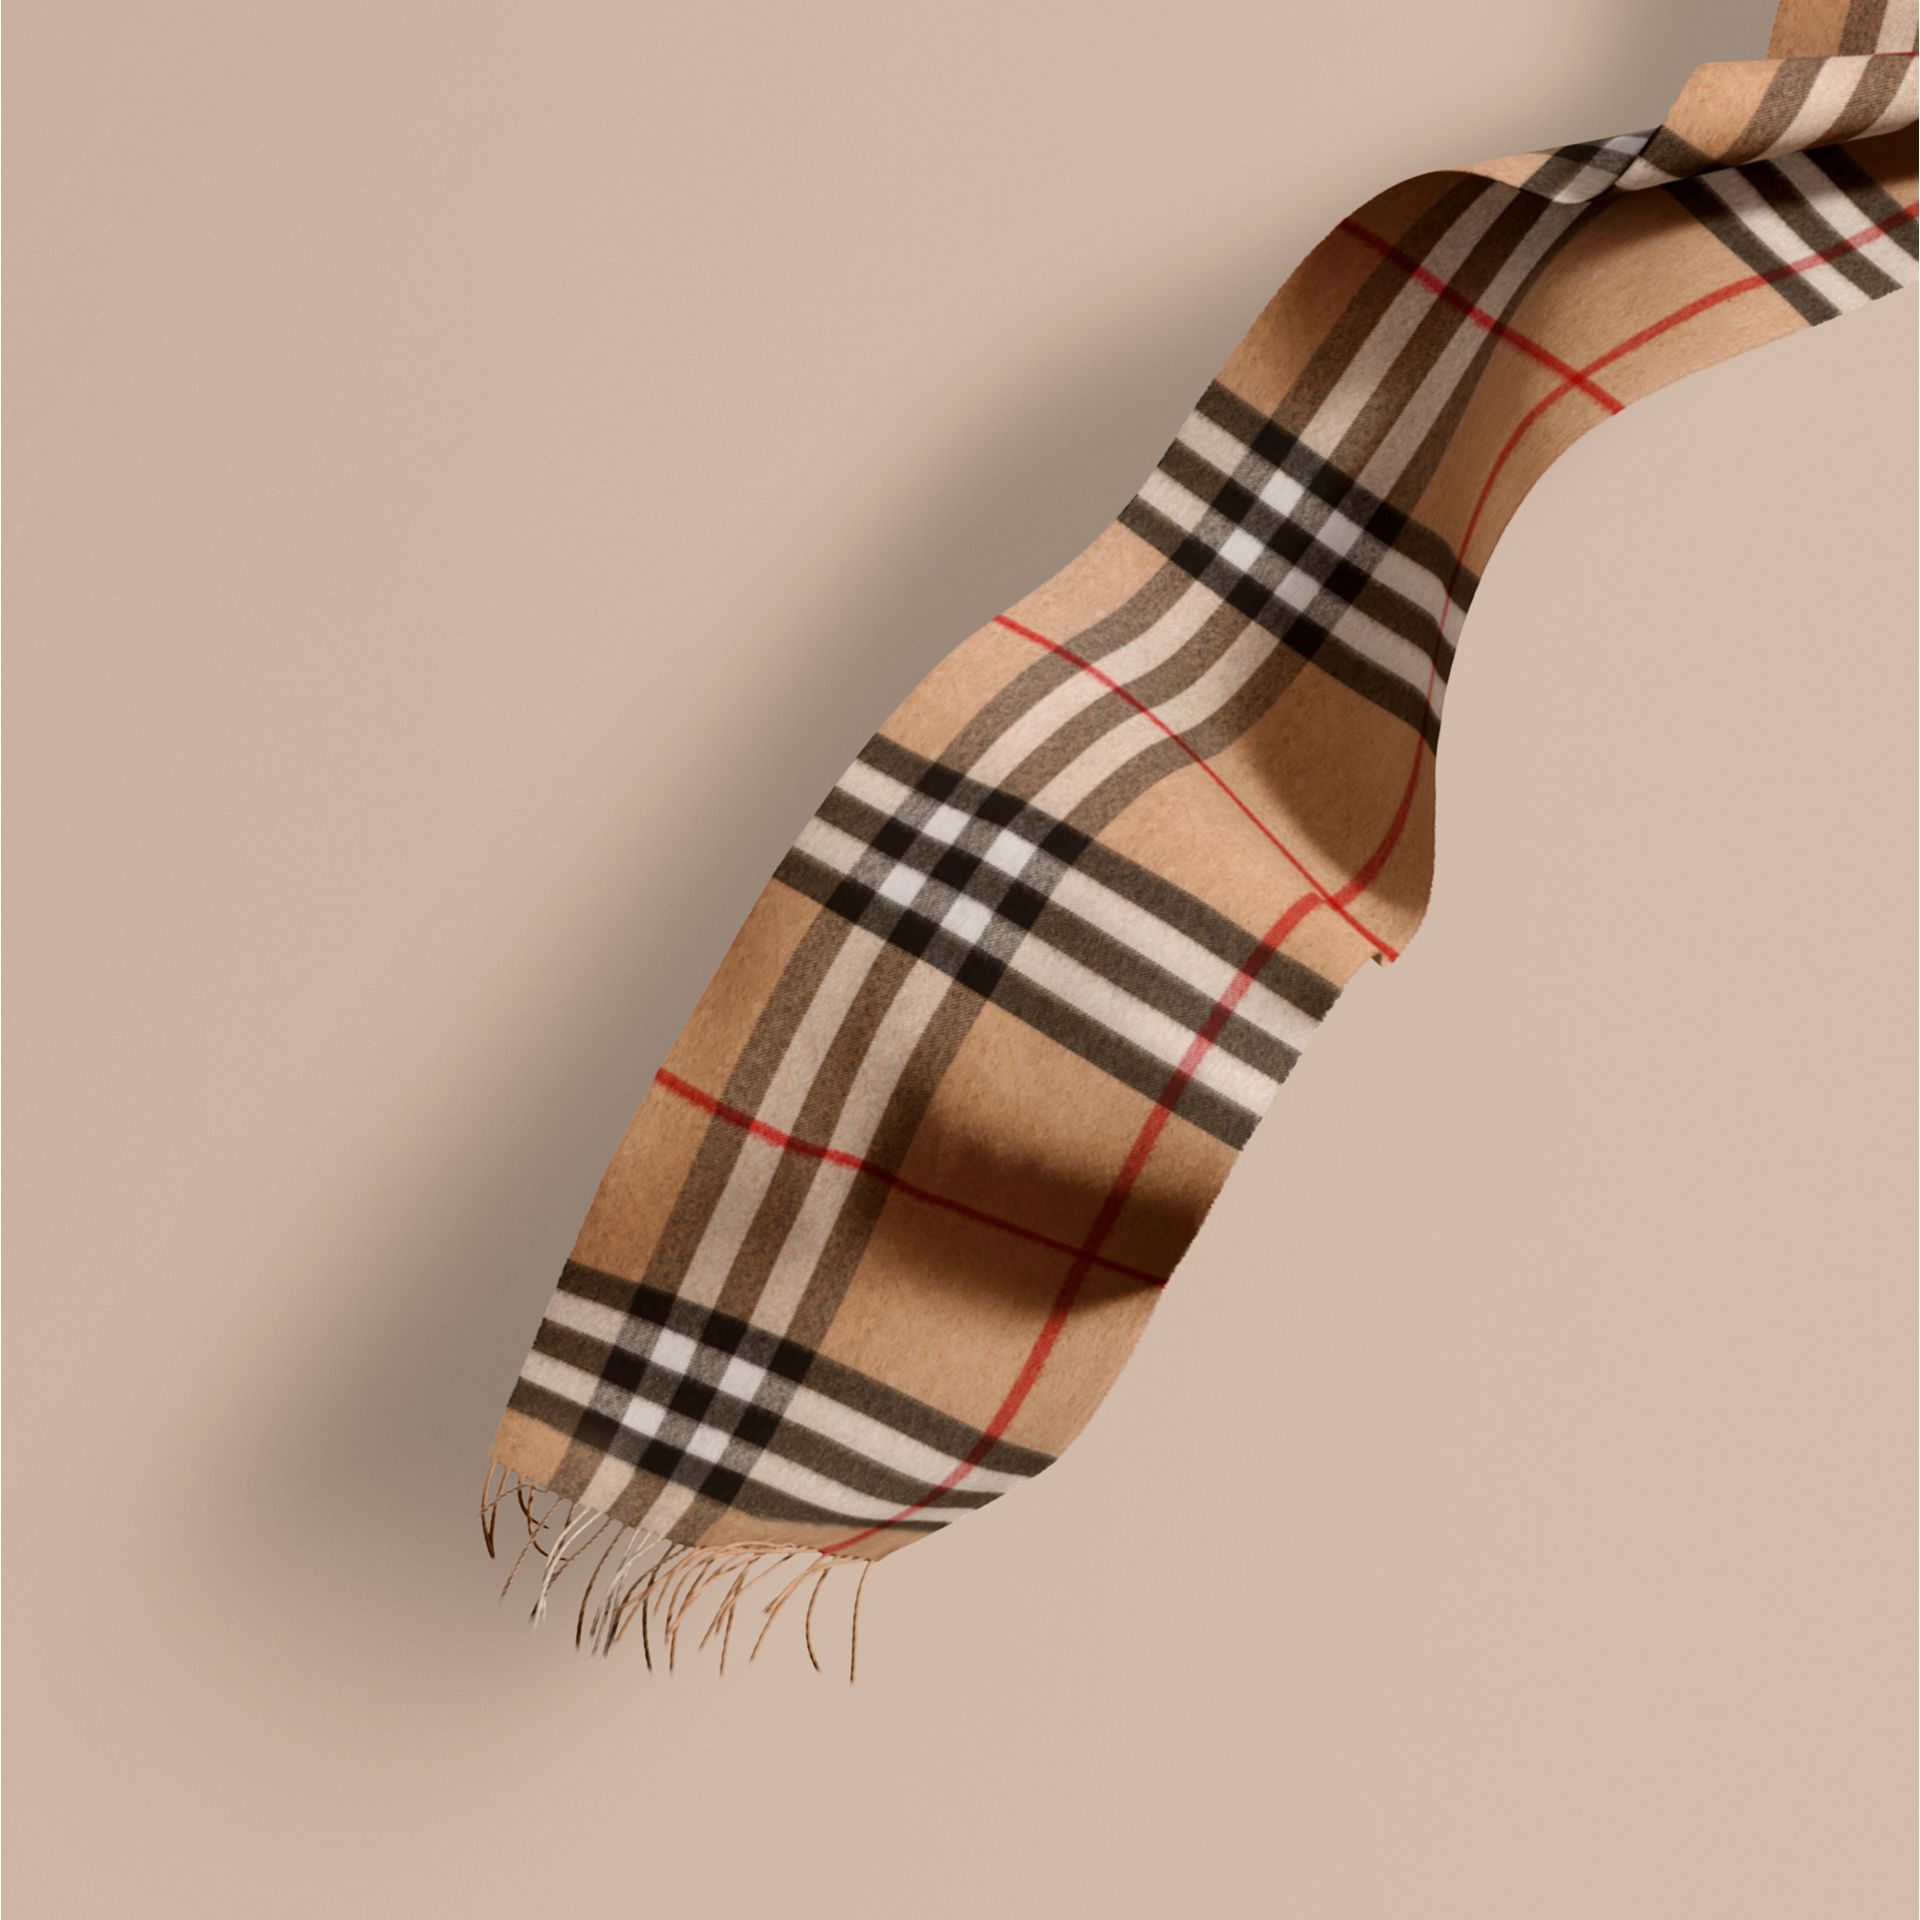 burberry - photo #35